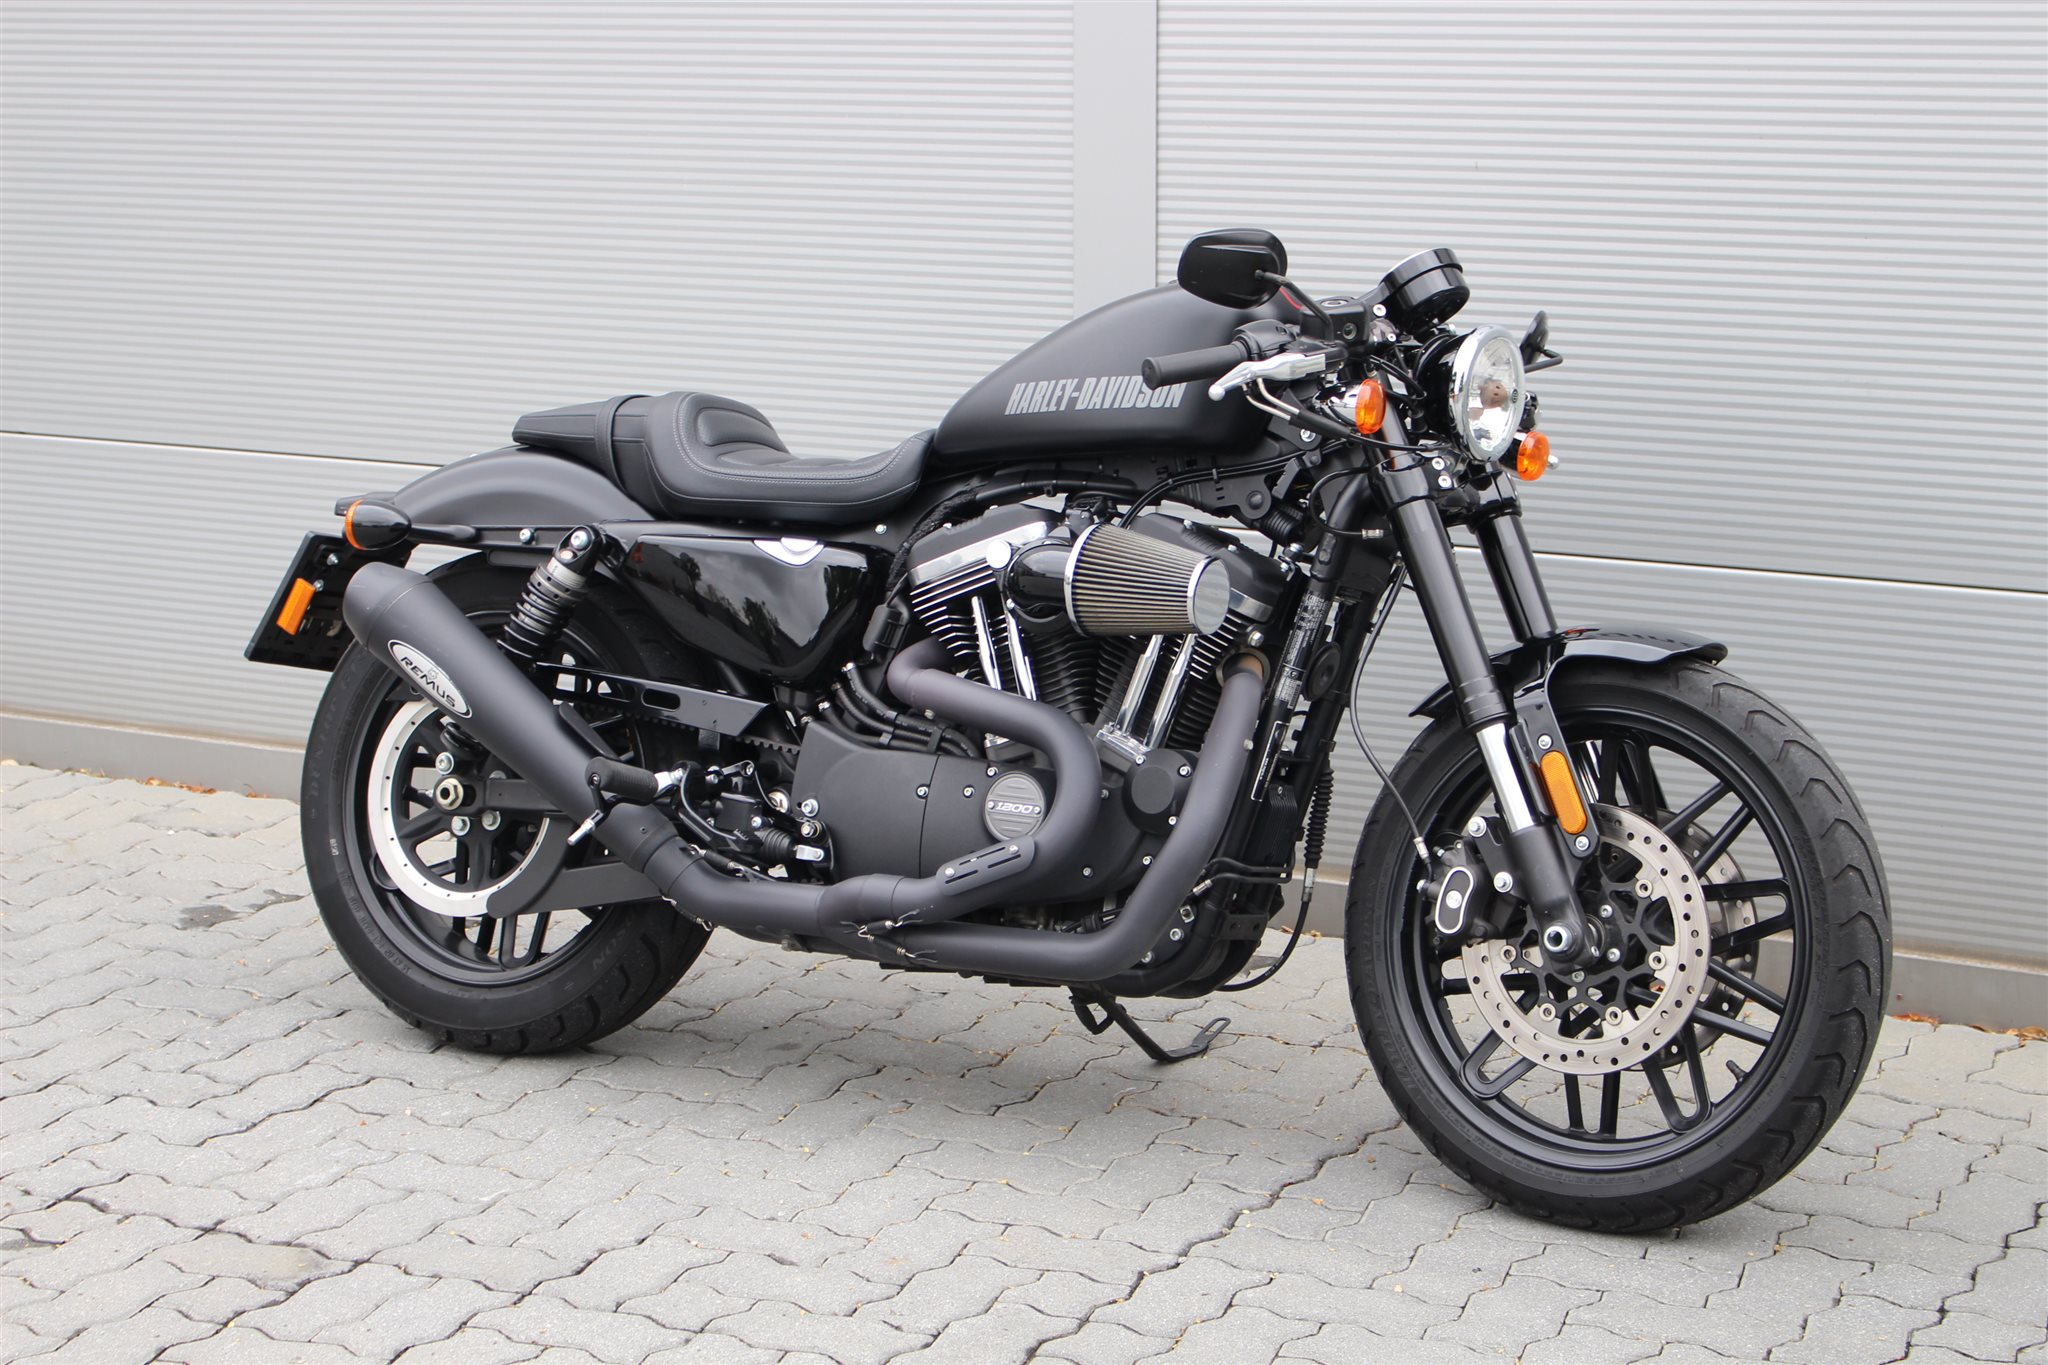 gebrauchte harley davidson sportster xl 1200cx roadster erstzulassung 2016 8000 km preis. Black Bedroom Furniture Sets. Home Design Ideas